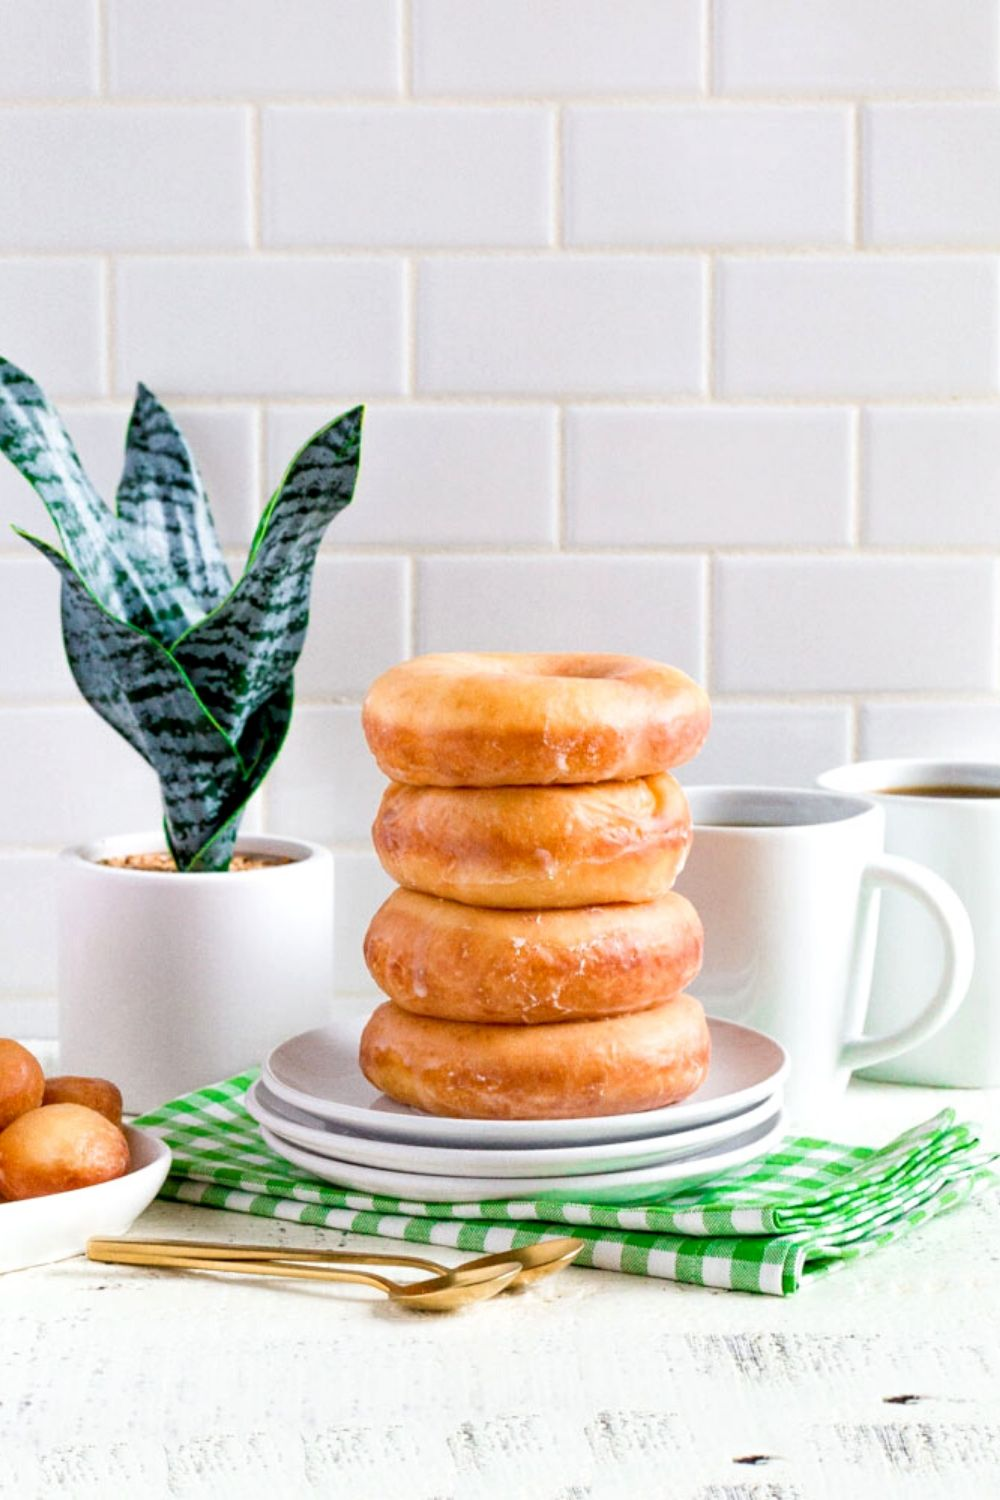 A stack of 4 glazed donuts next to 2 cups of coffee.